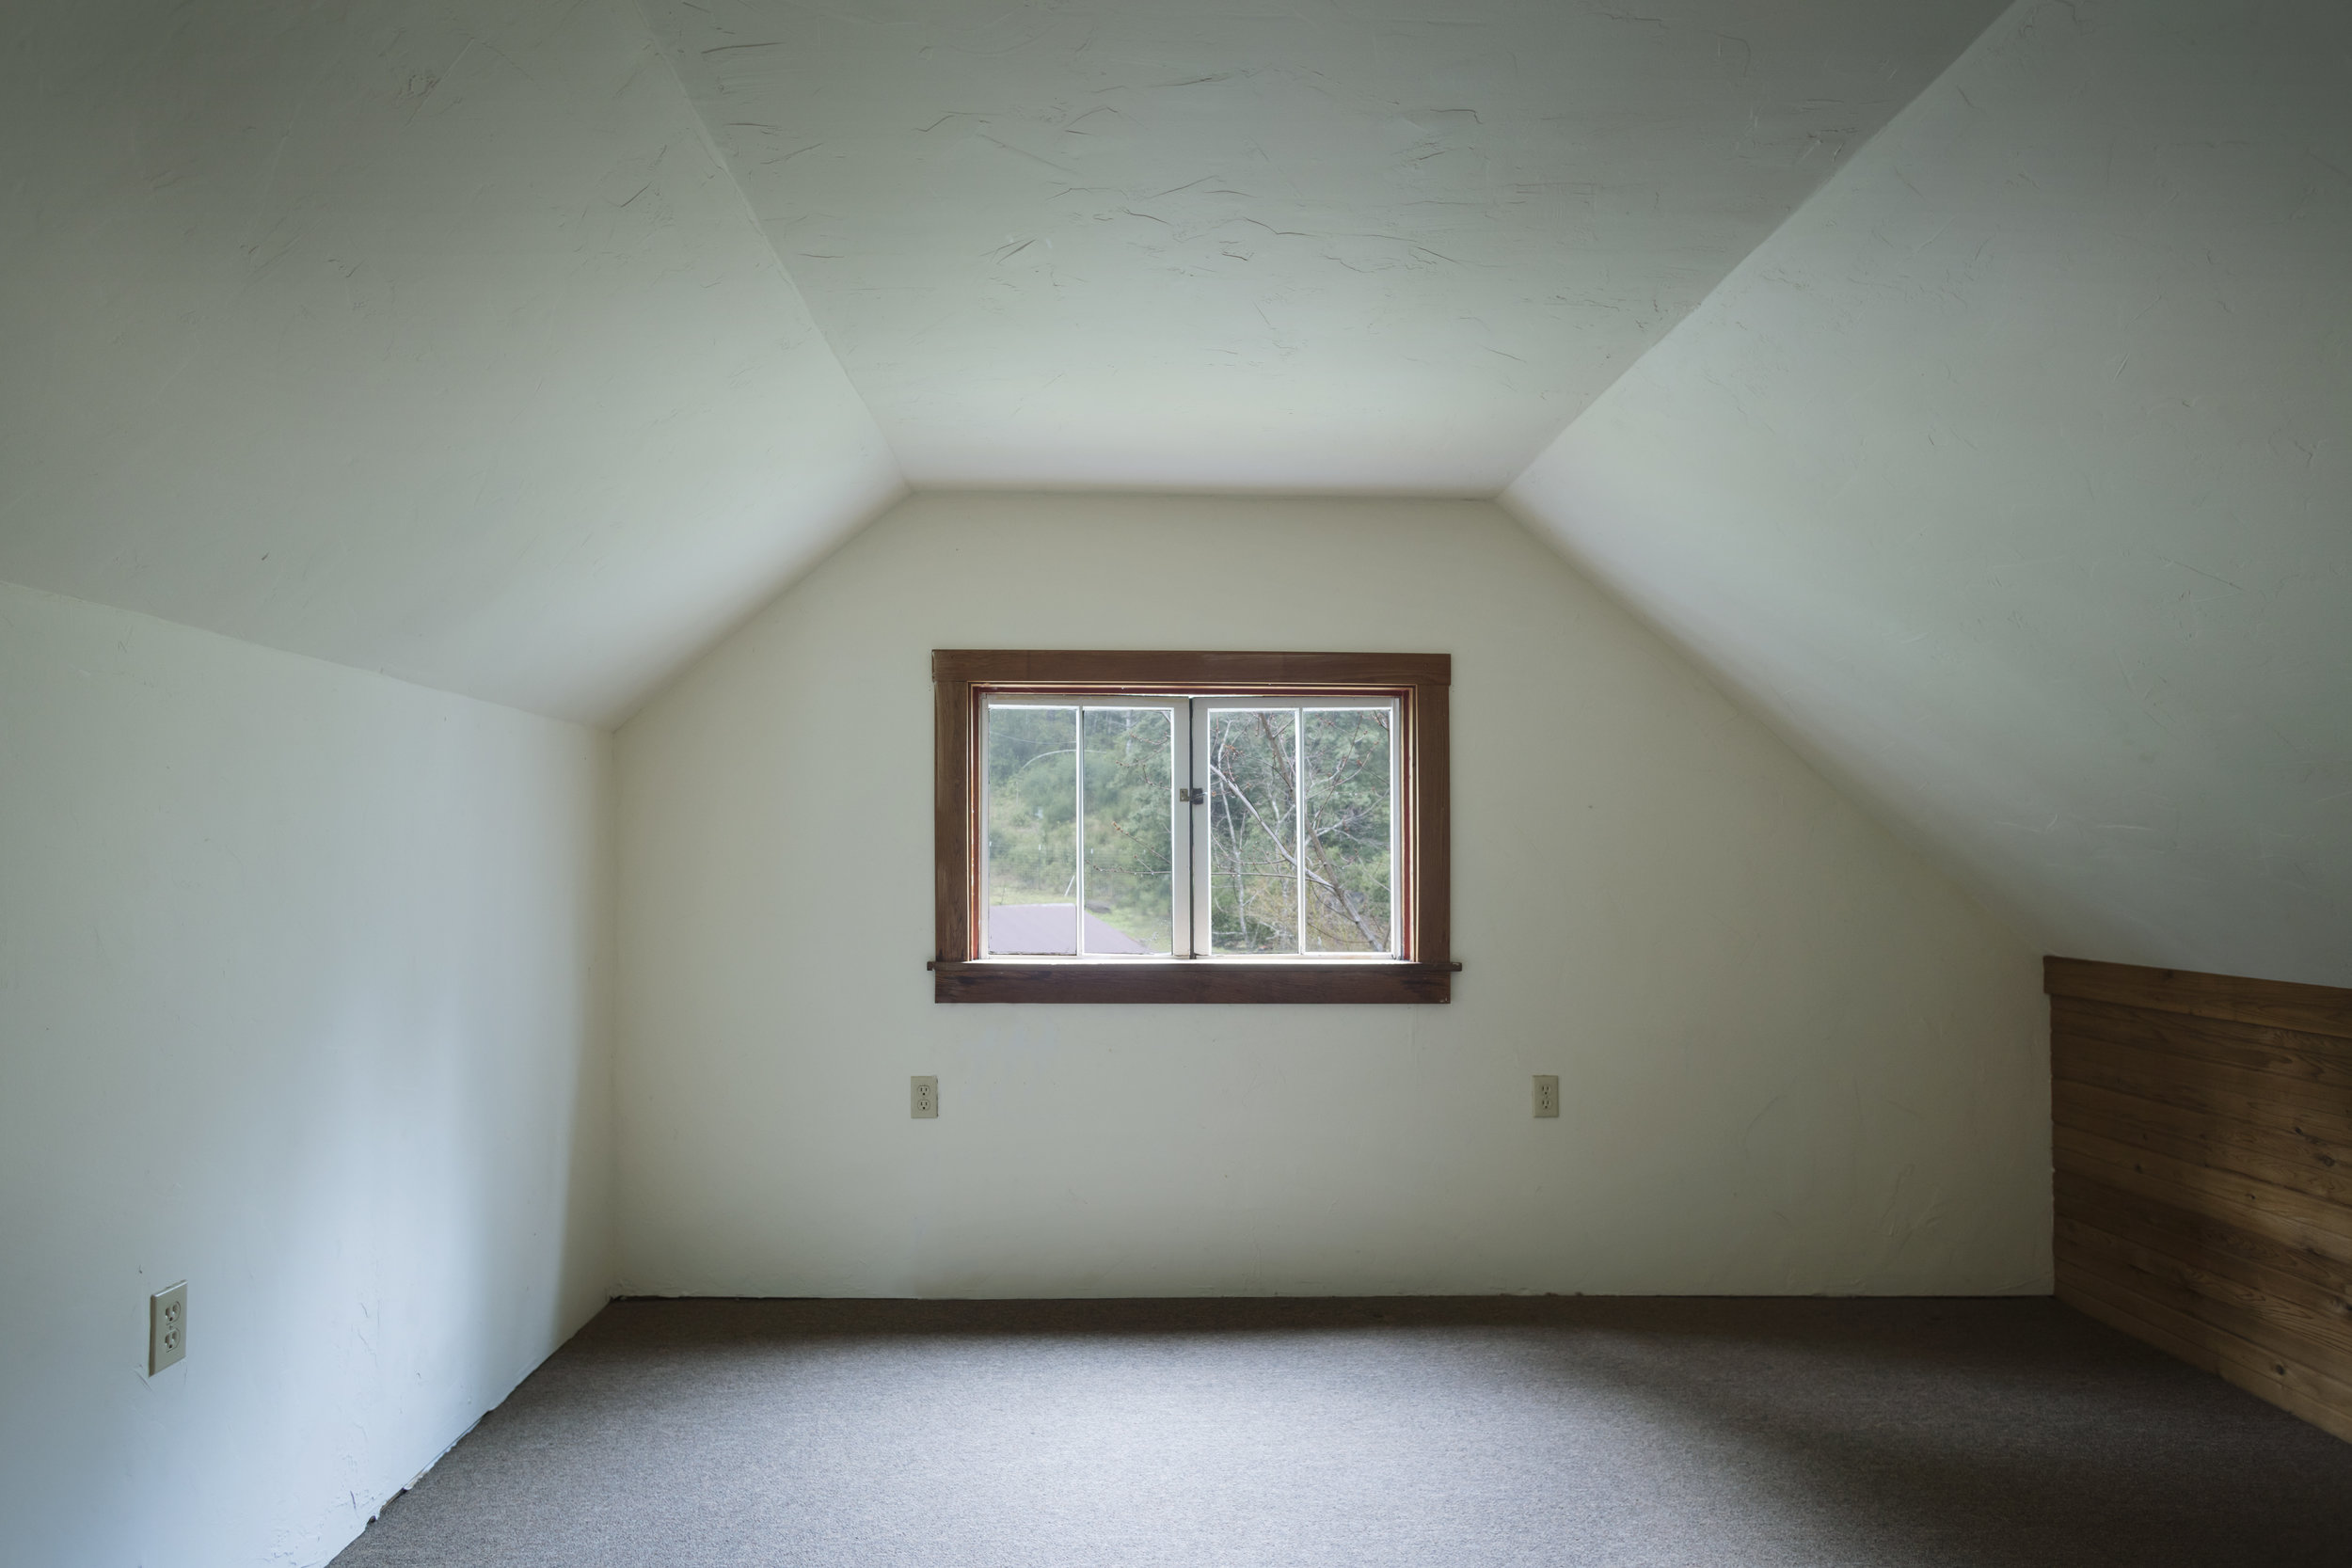 Third floor room in a home for sale in Philo, CA